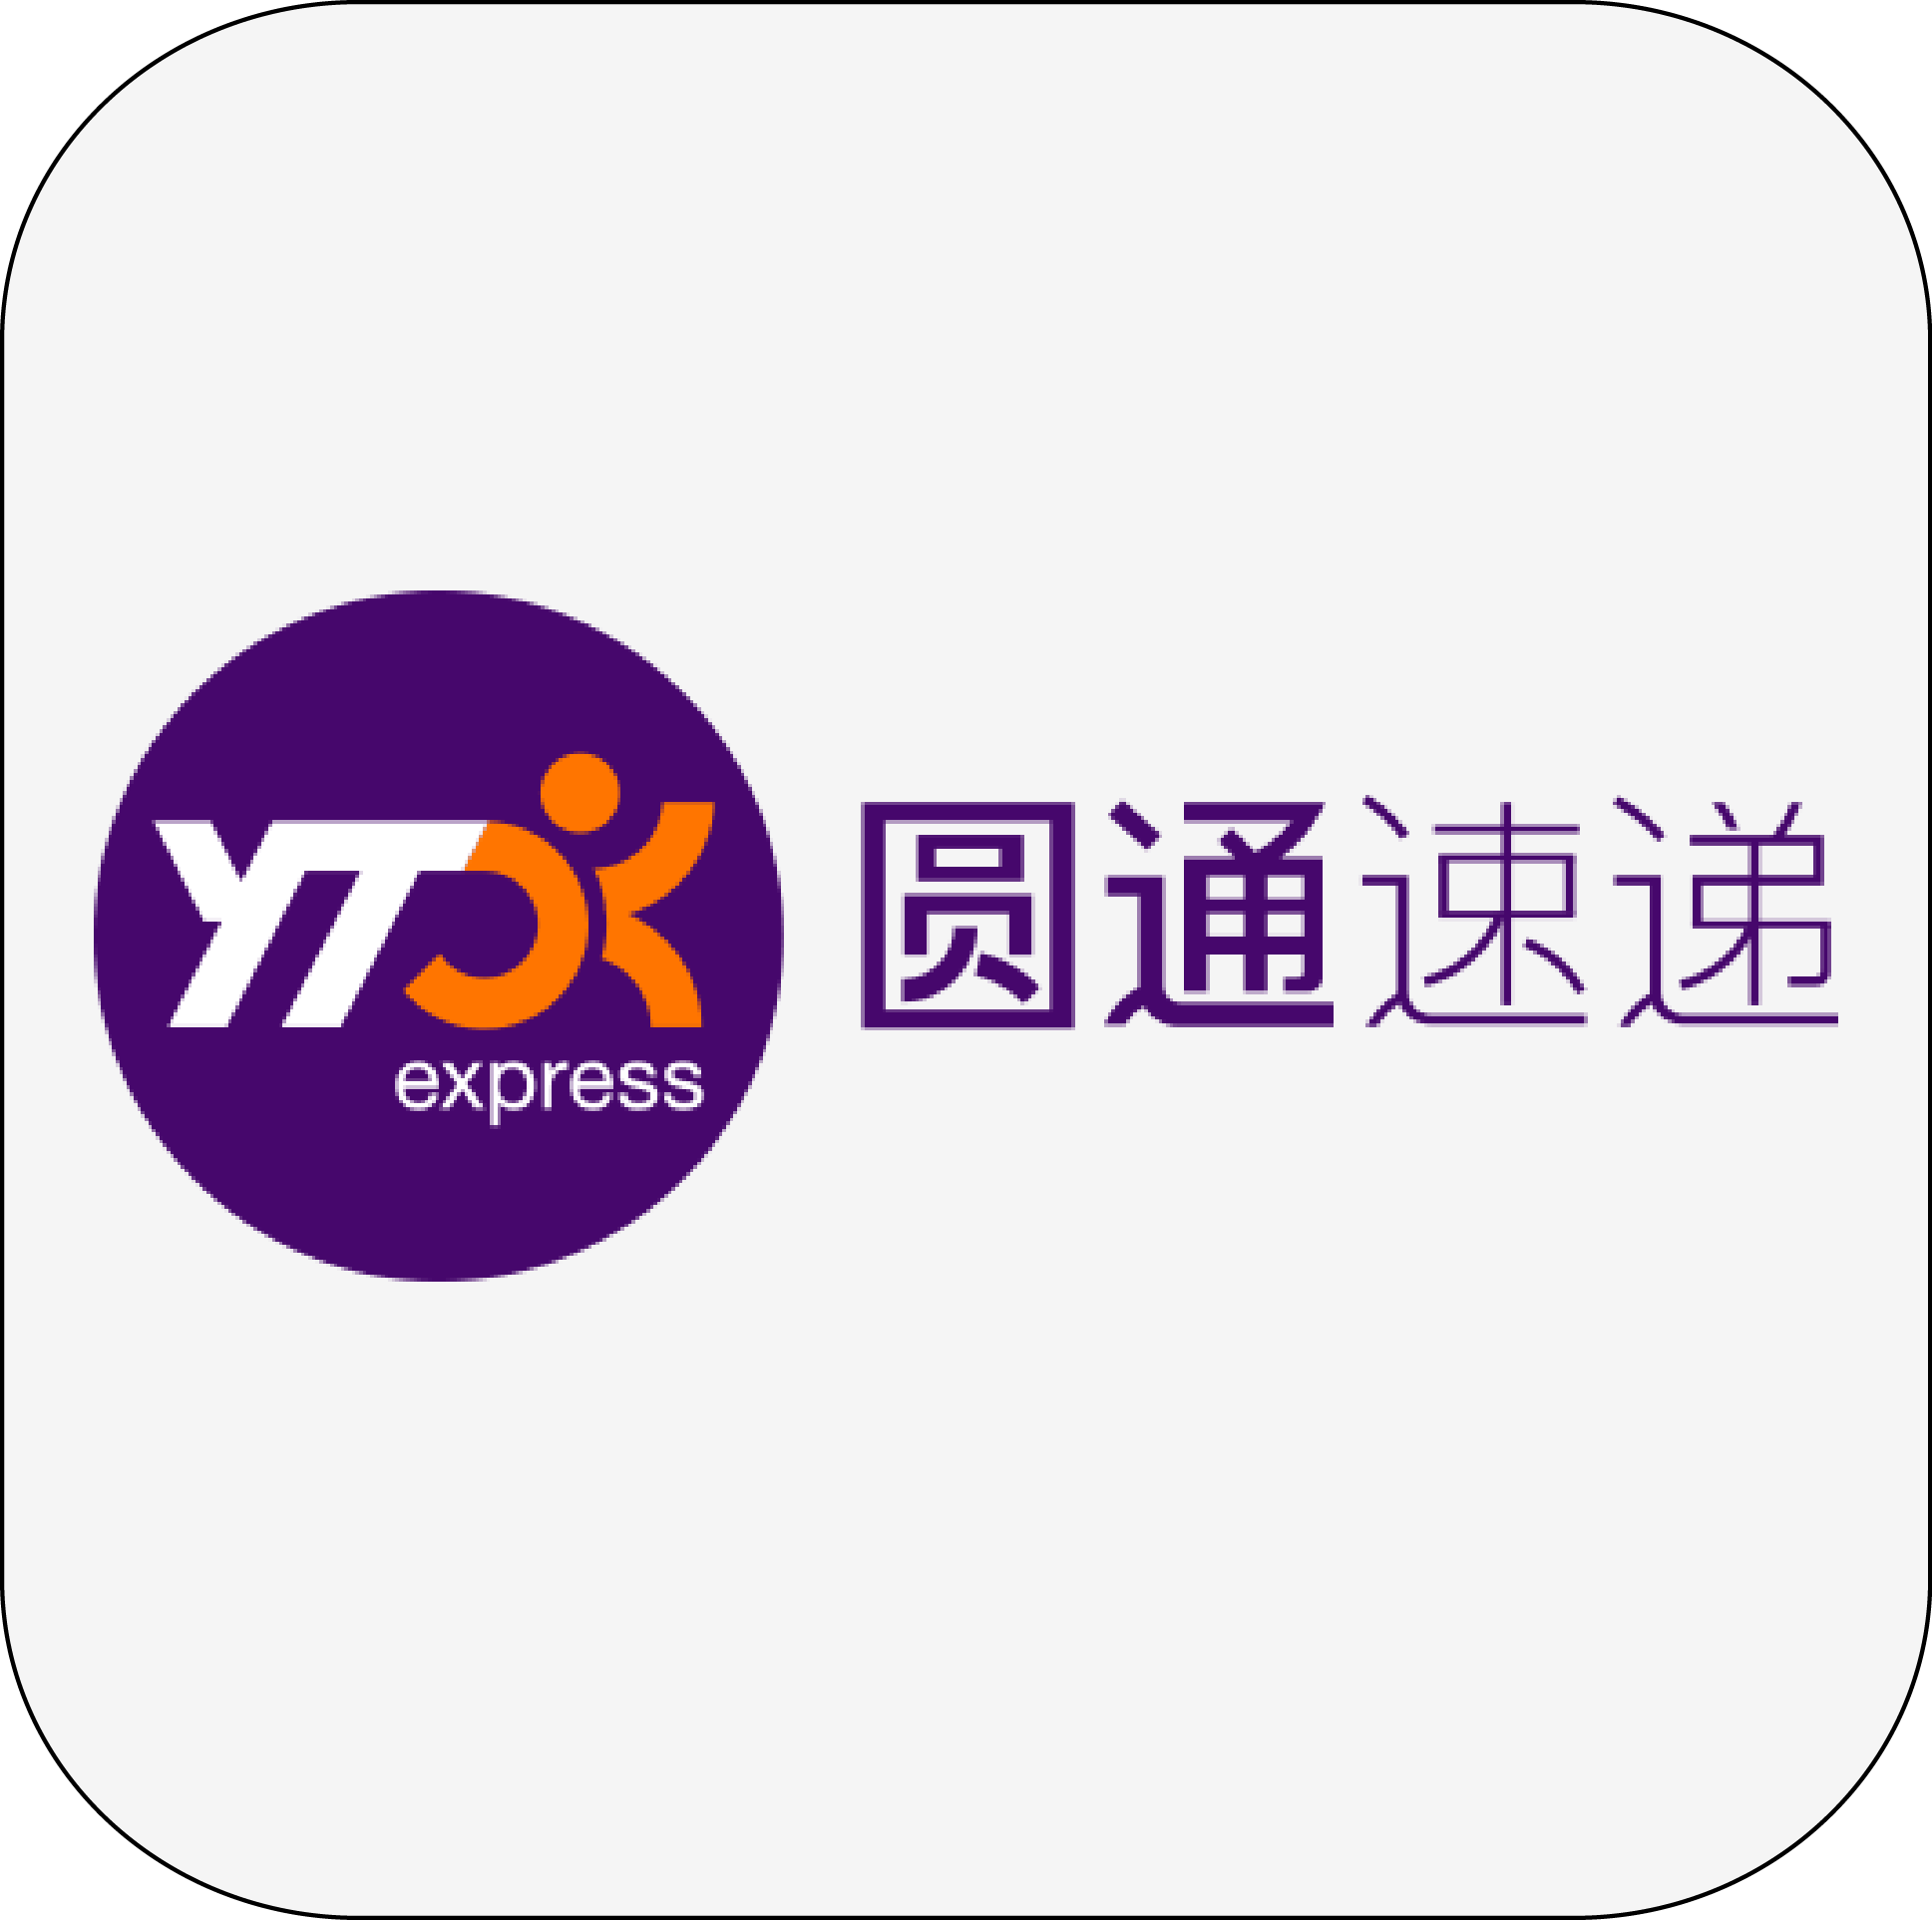 courier-integration-yto-express